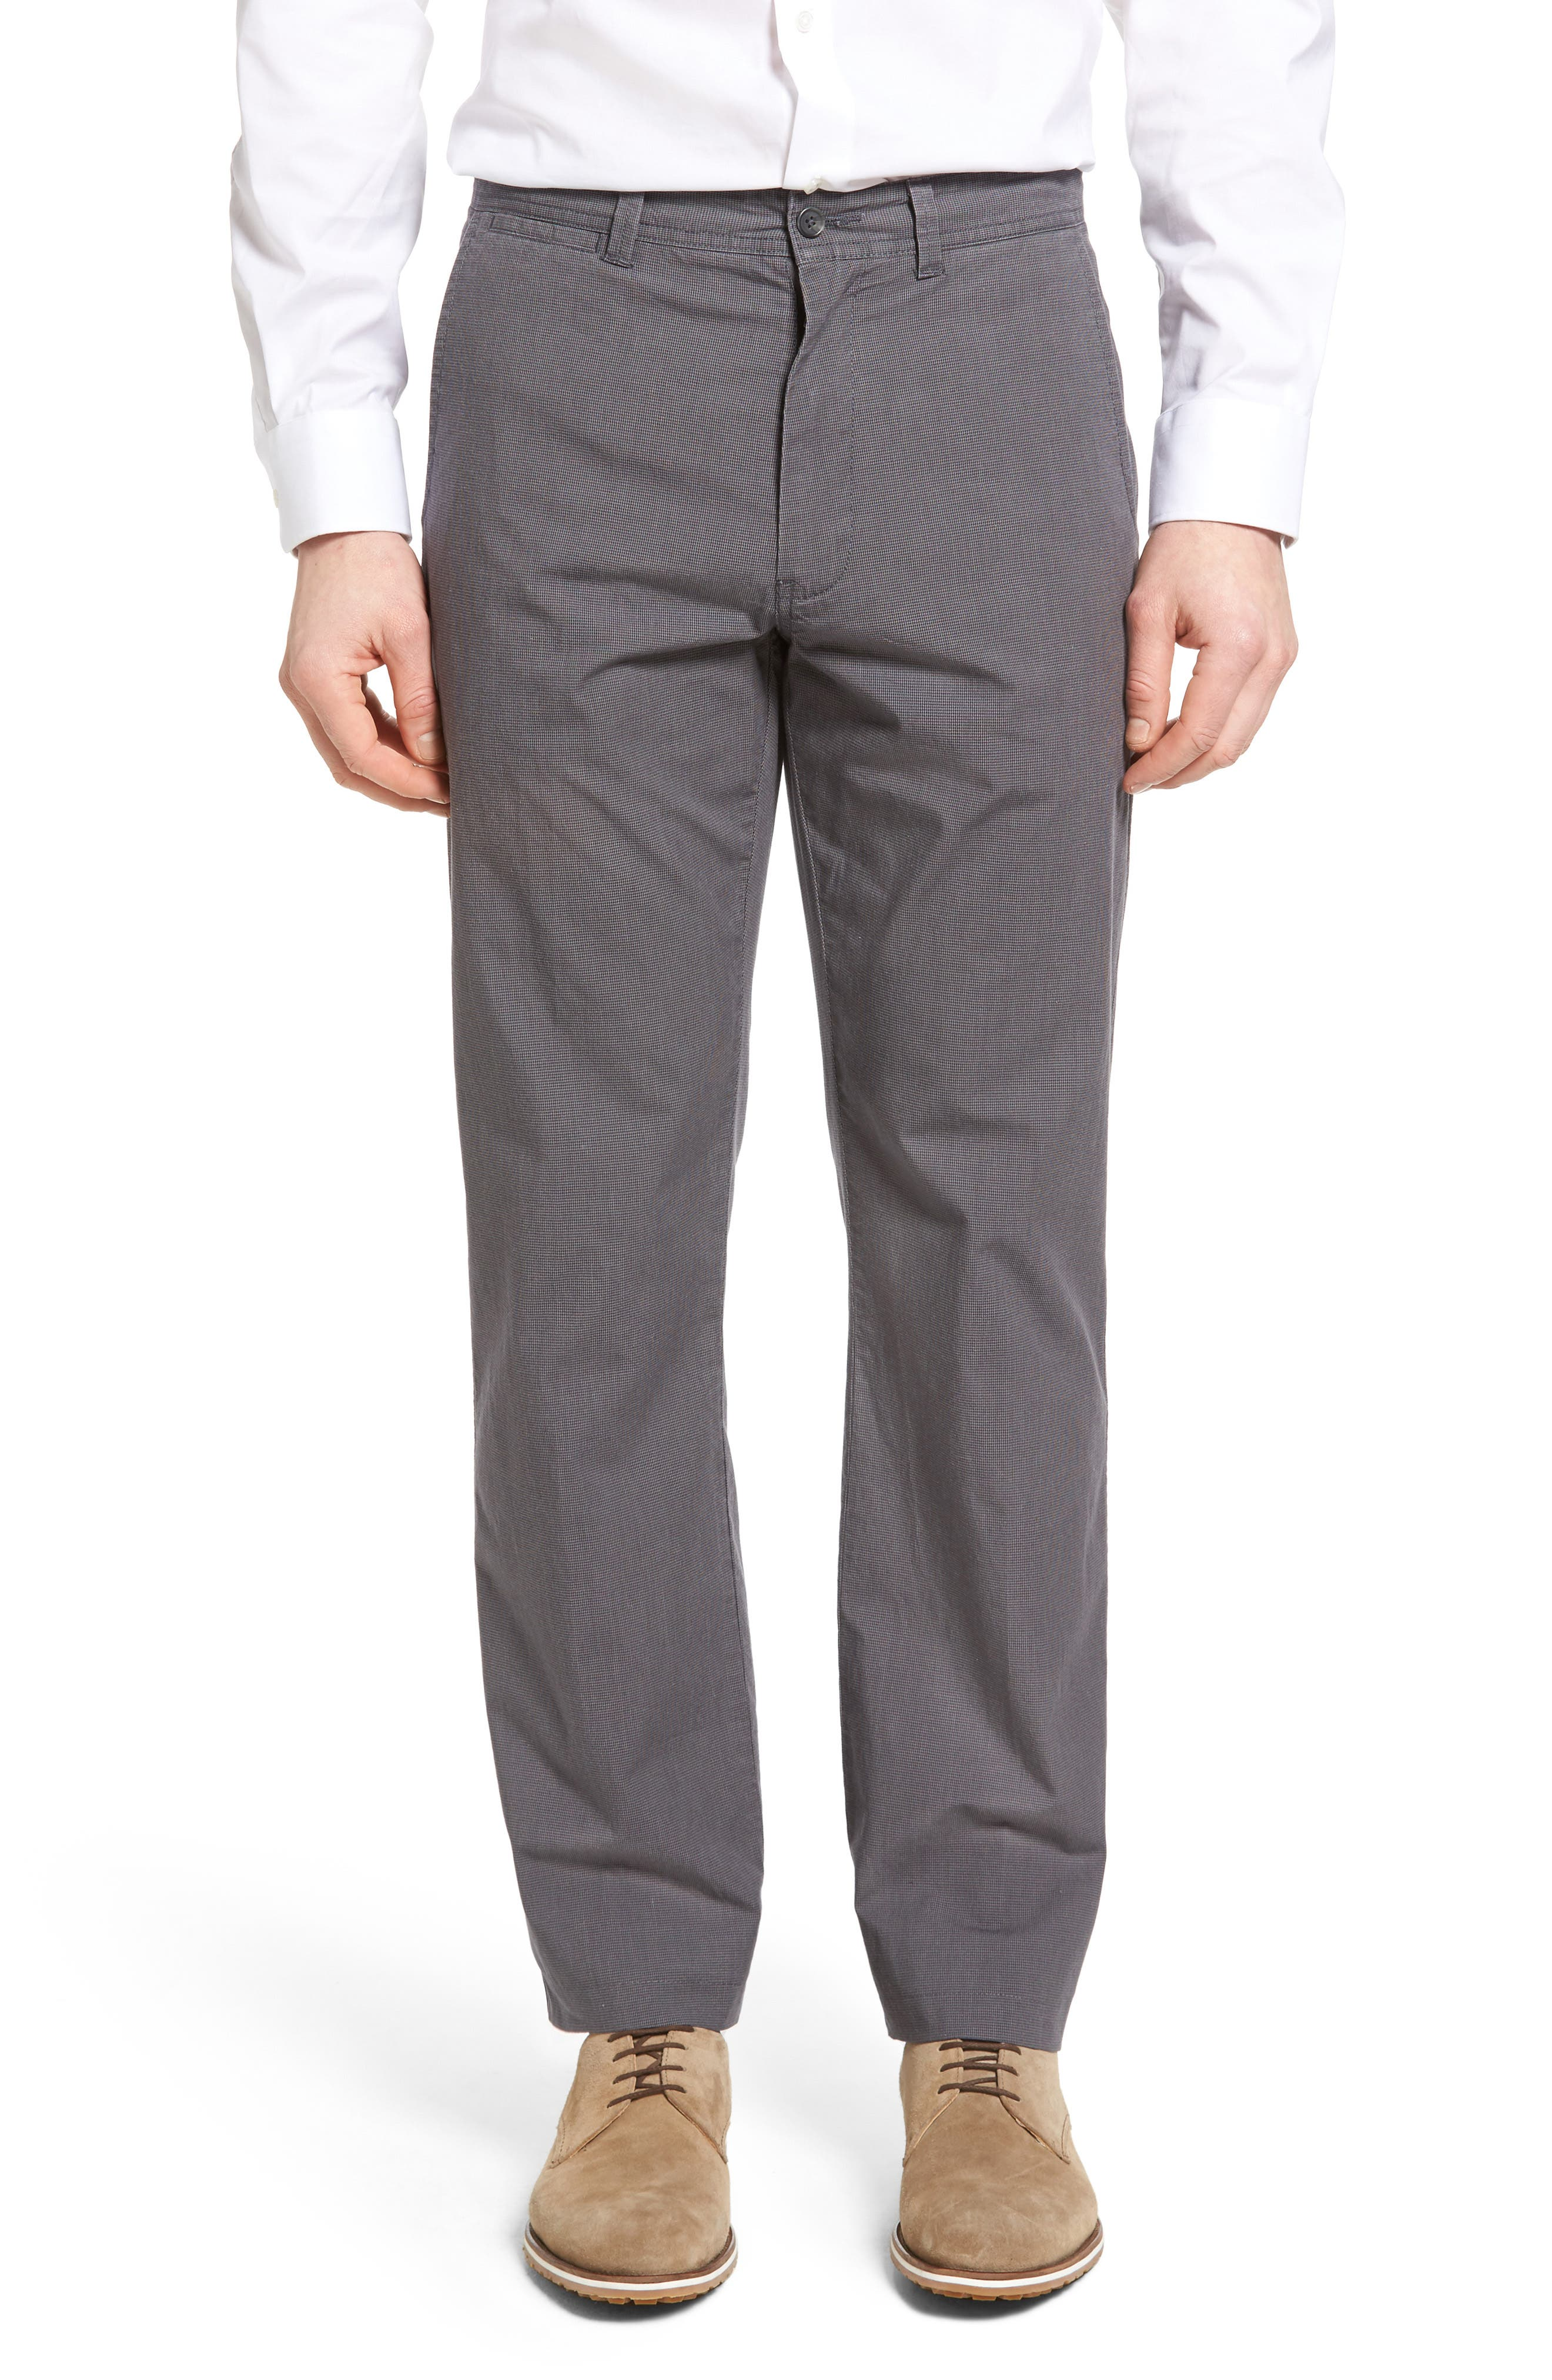 Woodward Regular Fit Trousers,                             Main thumbnail 1, color,                             069